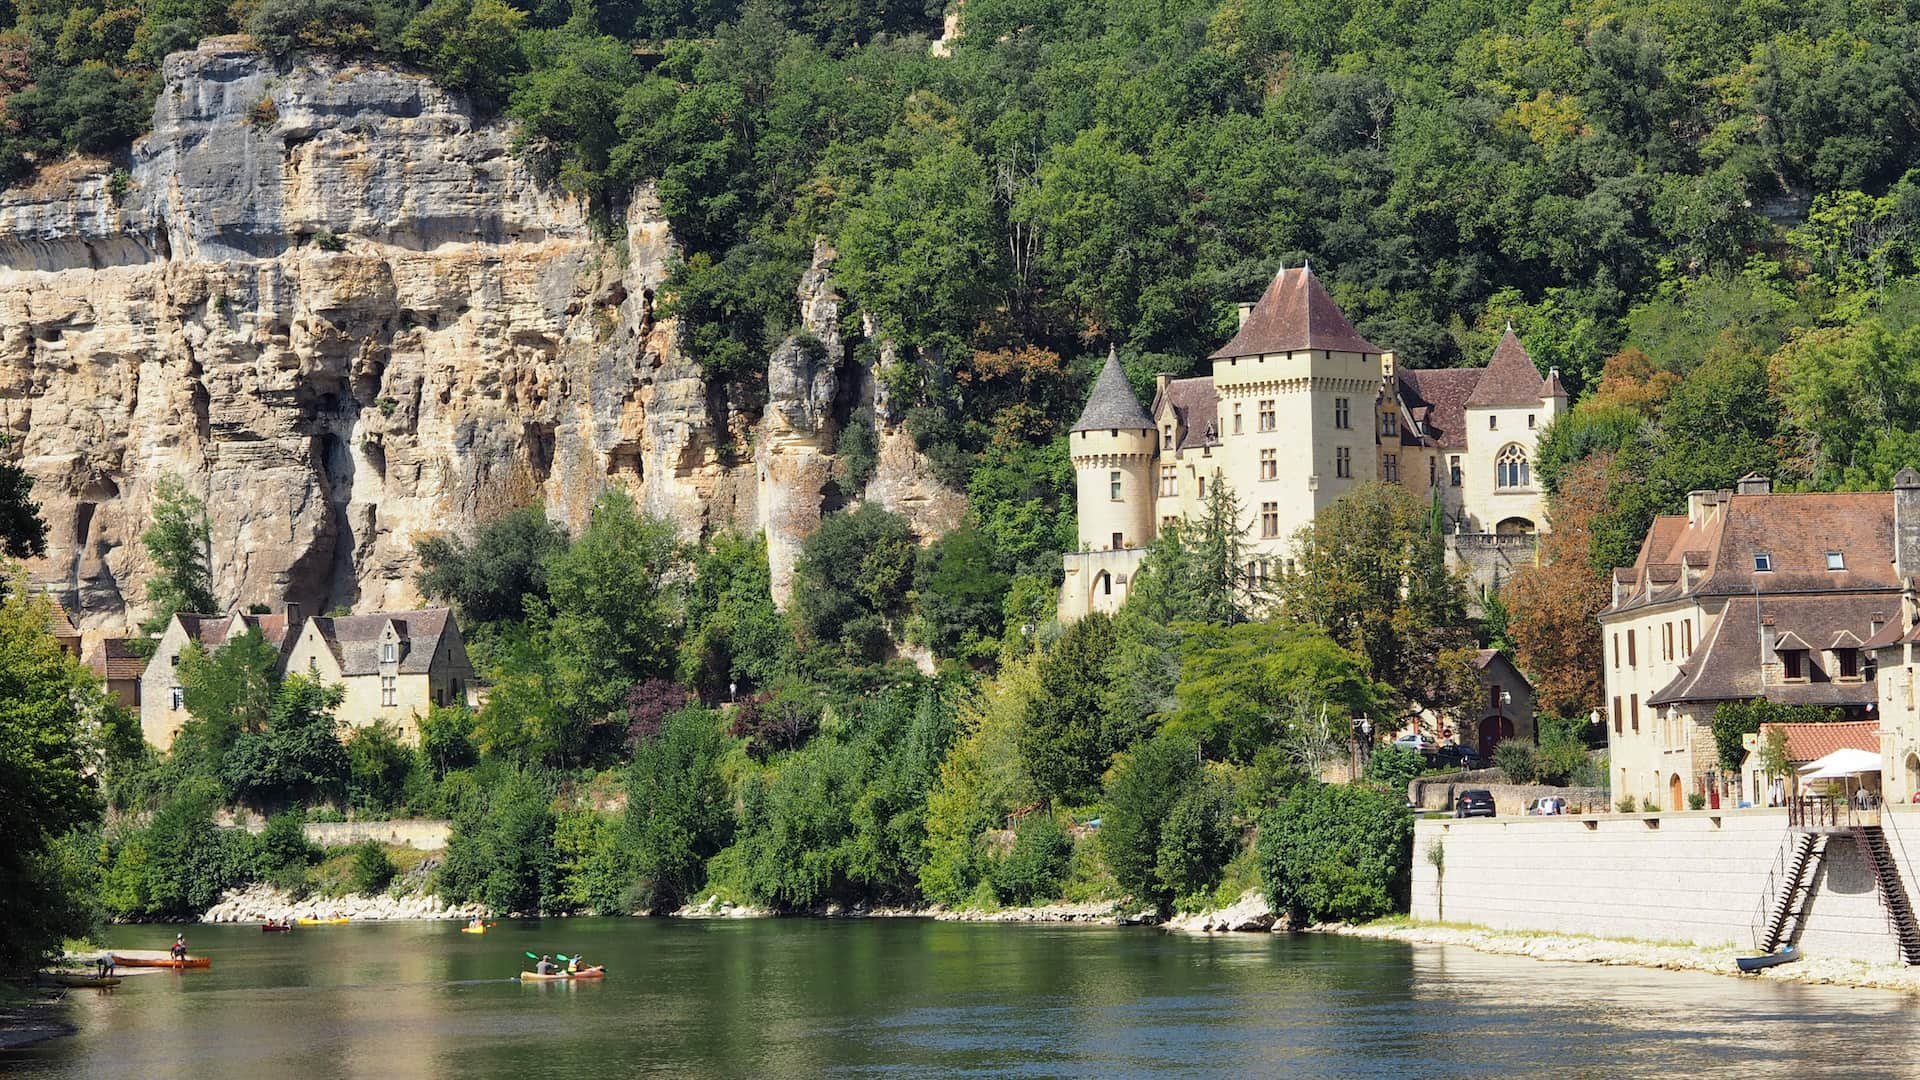 A large building with turrets looks our over a river with cliffs to the side